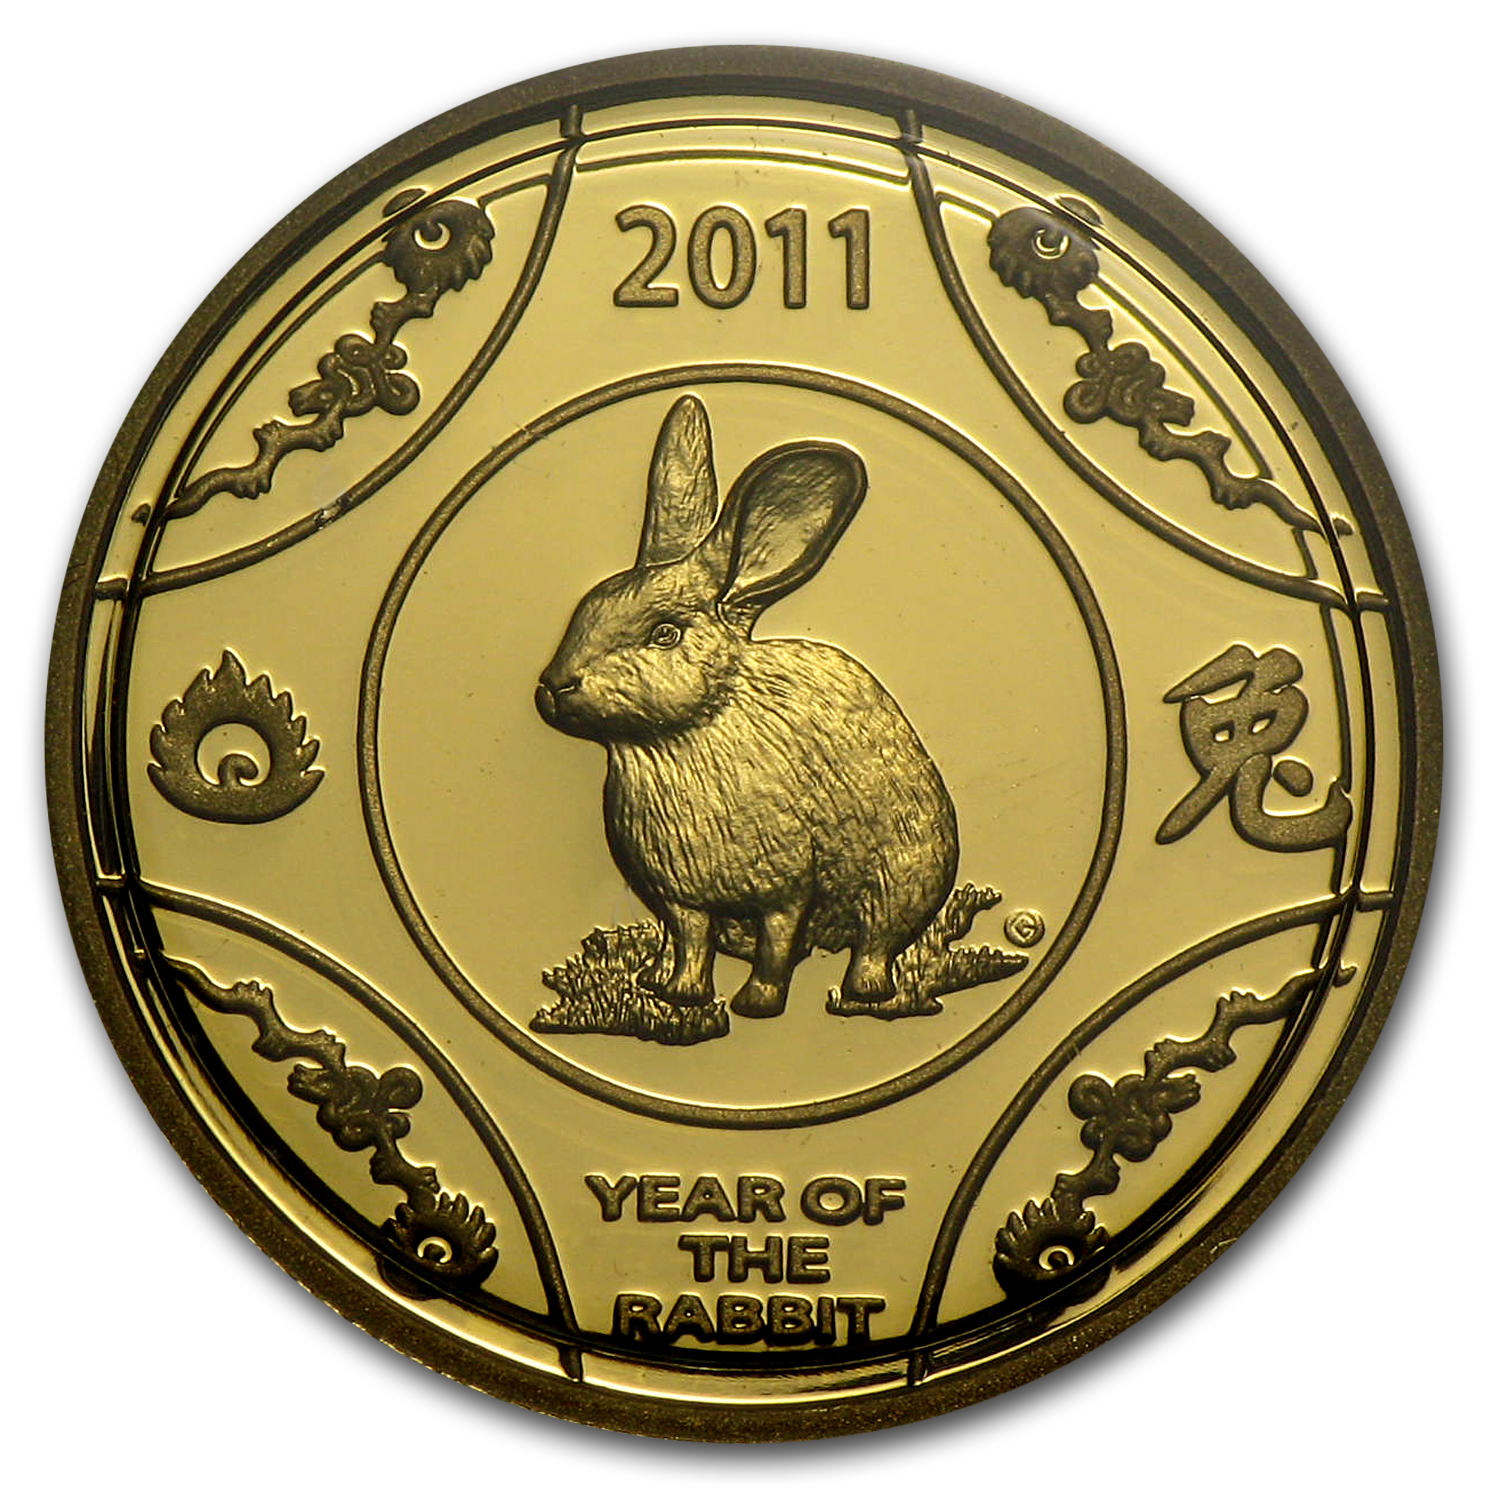 2011 Australia 1/10 oz Gold Year of the Rabbit Proof